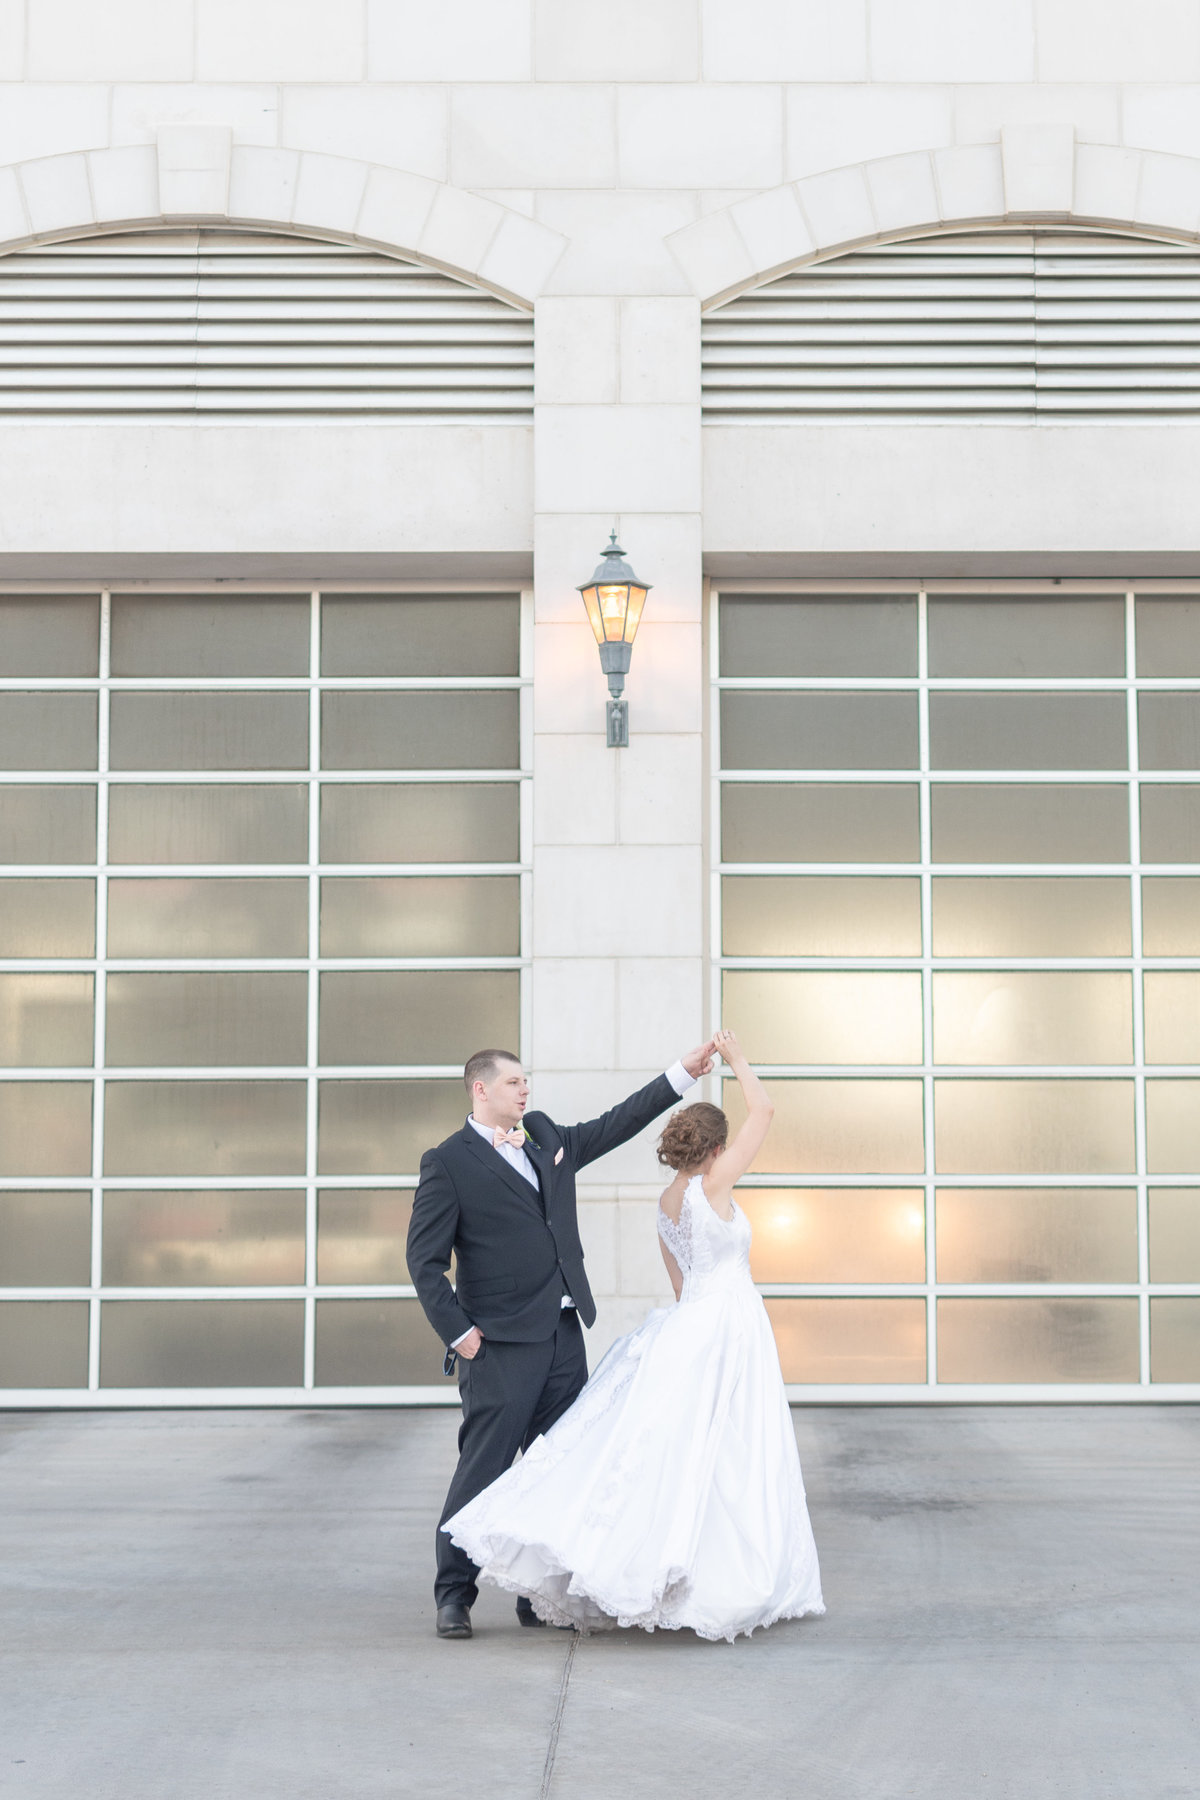 groom spinning bride in front of fire station